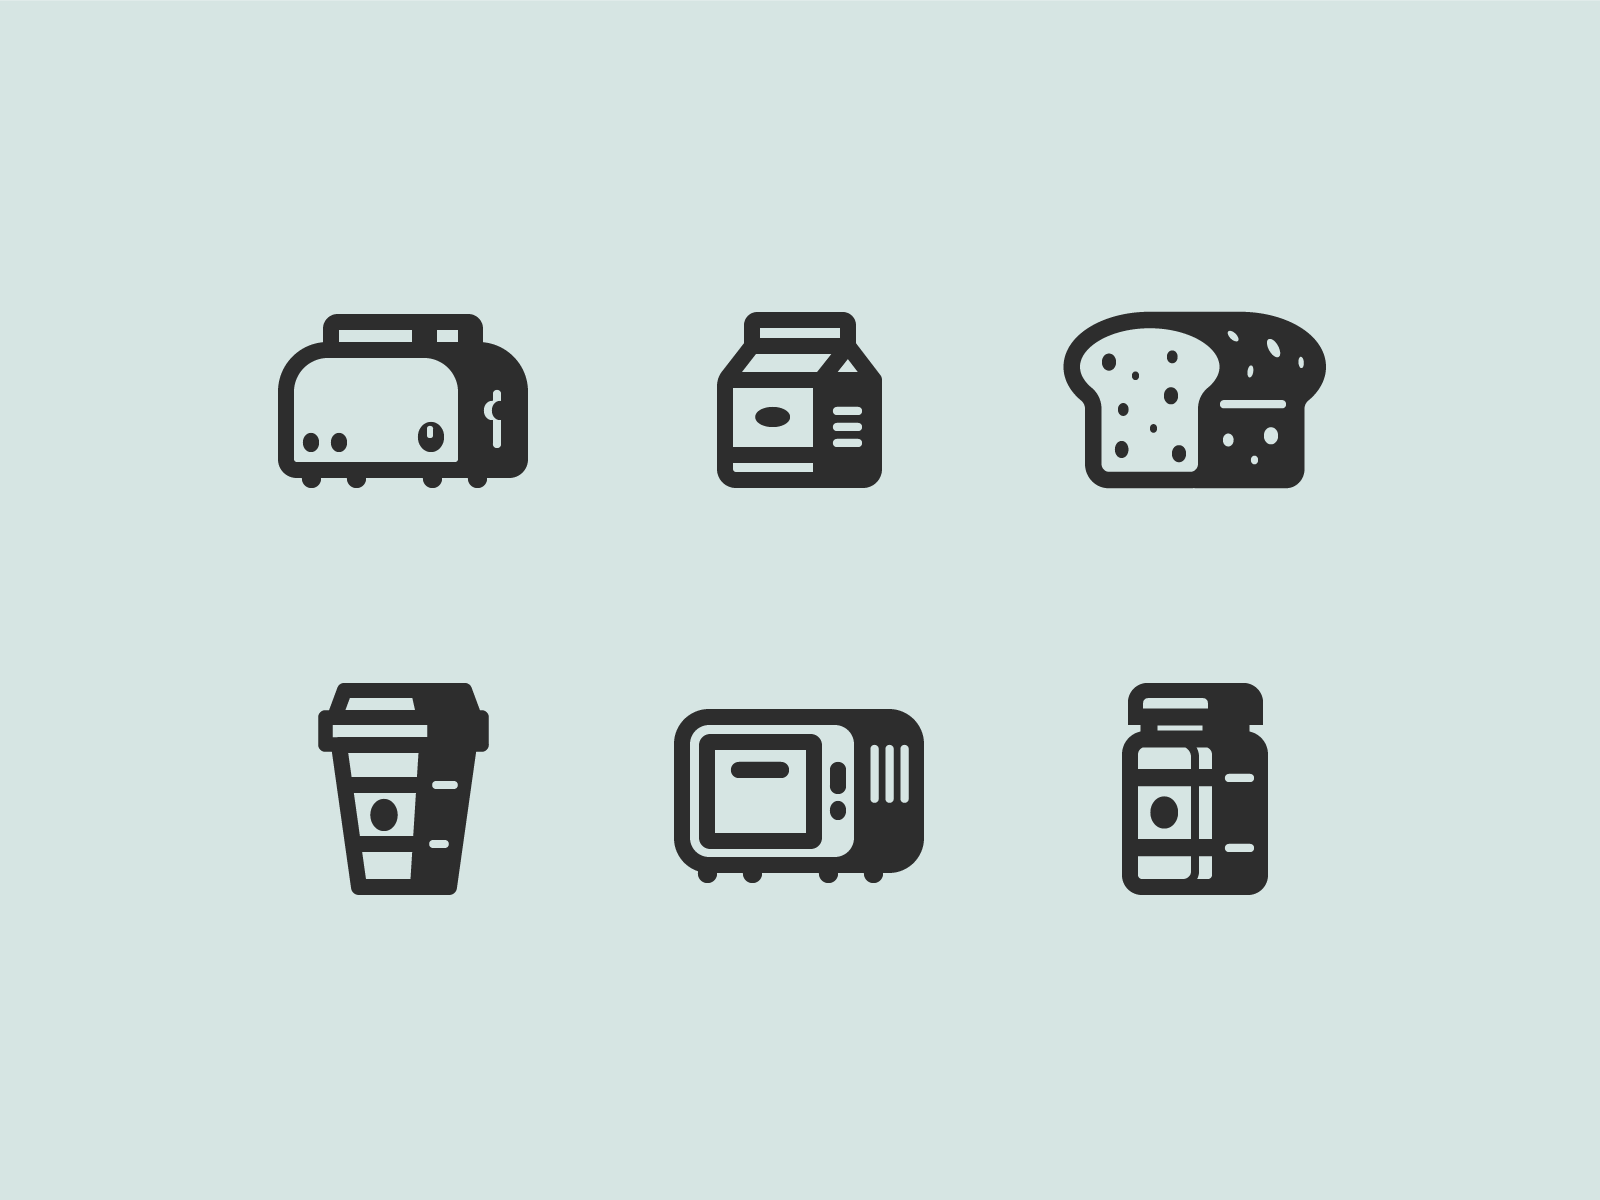 2 52iconsets shadow